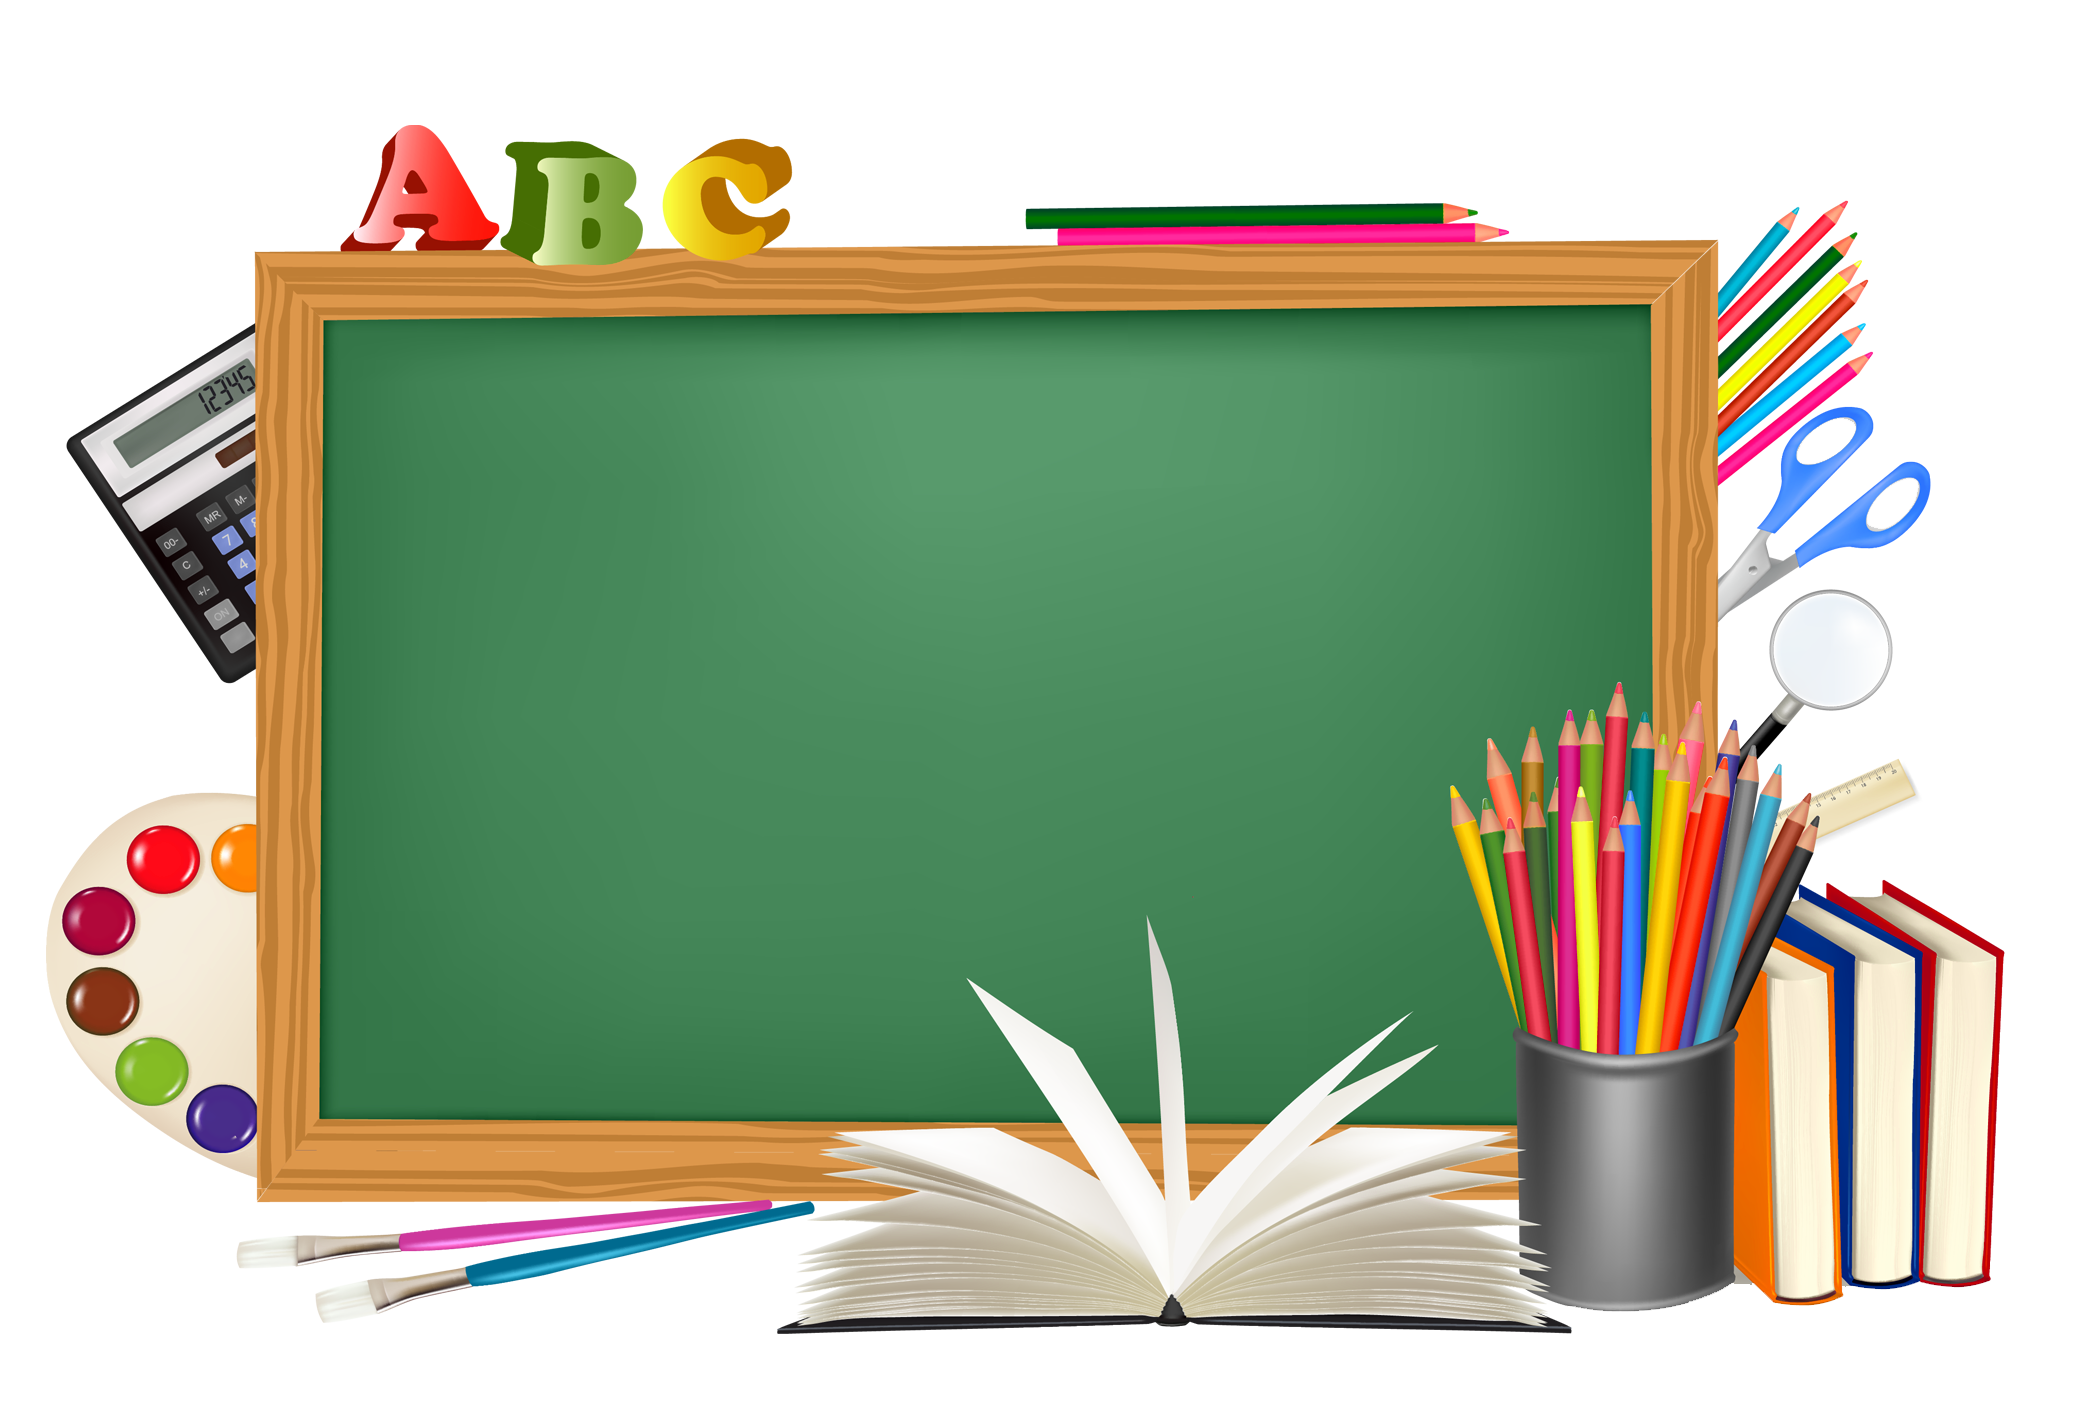 Board clipart banner royalty free library School Board Clip Art - Free Clipart banner royalty free library